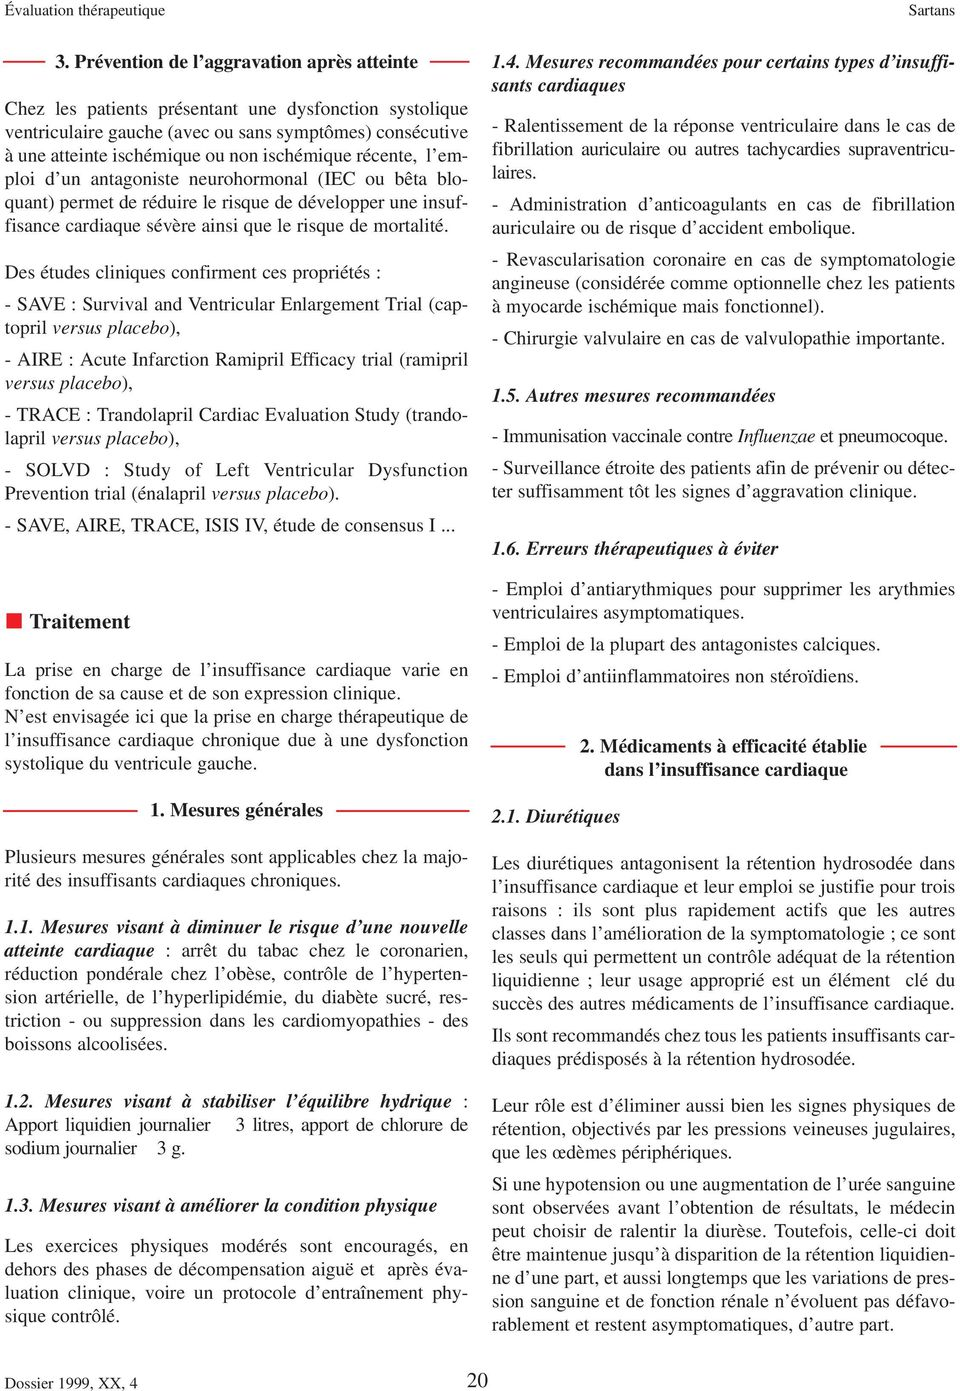 Des études cliniques confirment ces propriétés : - SAVE : Survival and Ventricular Enlargement Trial (captopril versus placebo), - AIRE : Acute Infarction Ramipril Efficacy trial (ramipril versus